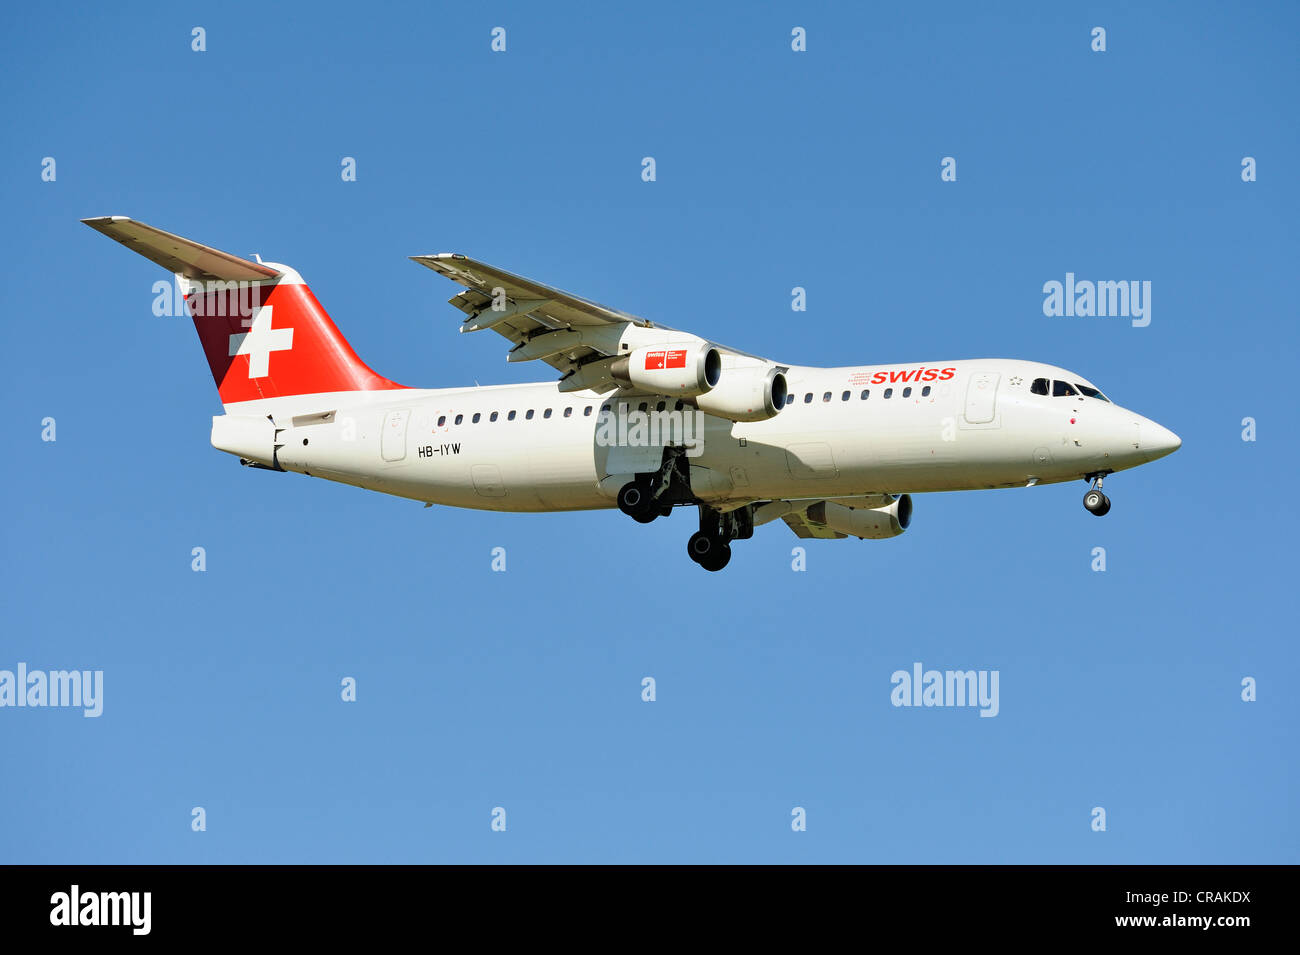 Swiss BAE Systems Avro 146-RJ100 during the landing approach to Zurich Airport, Zurich, Switzerland, Europe - Stock Image